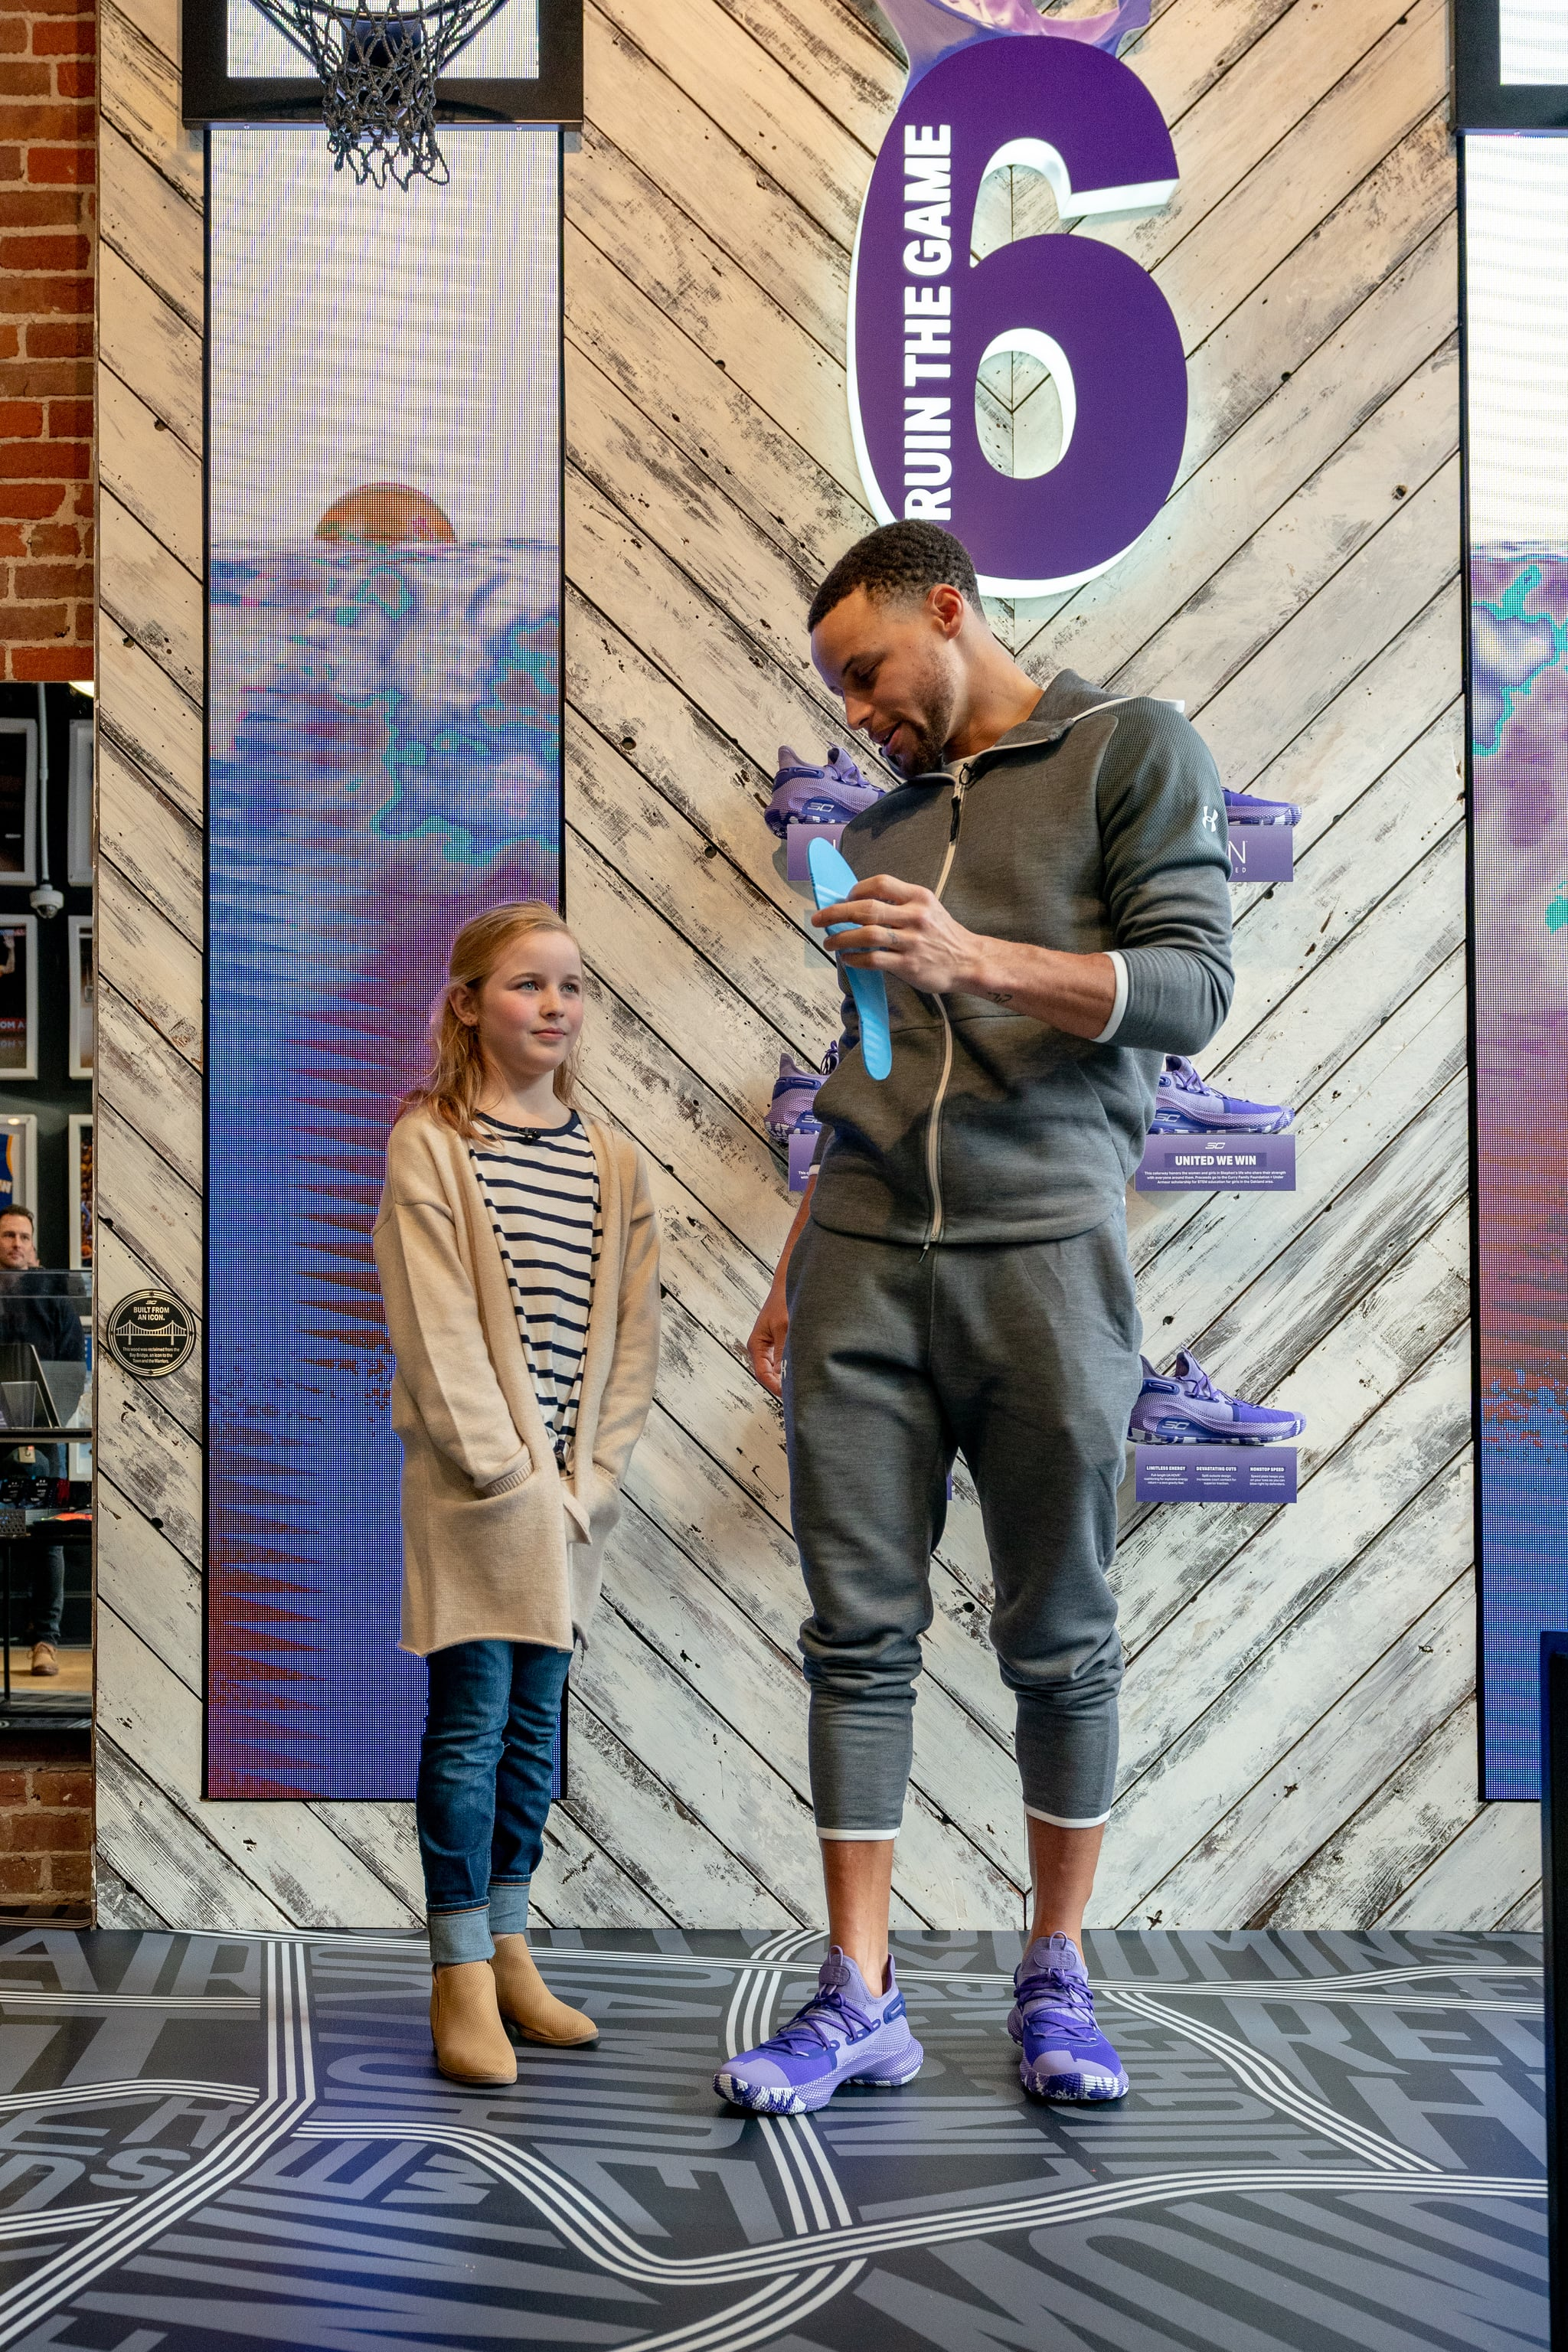 Steph Curry Sneakers For Girl on